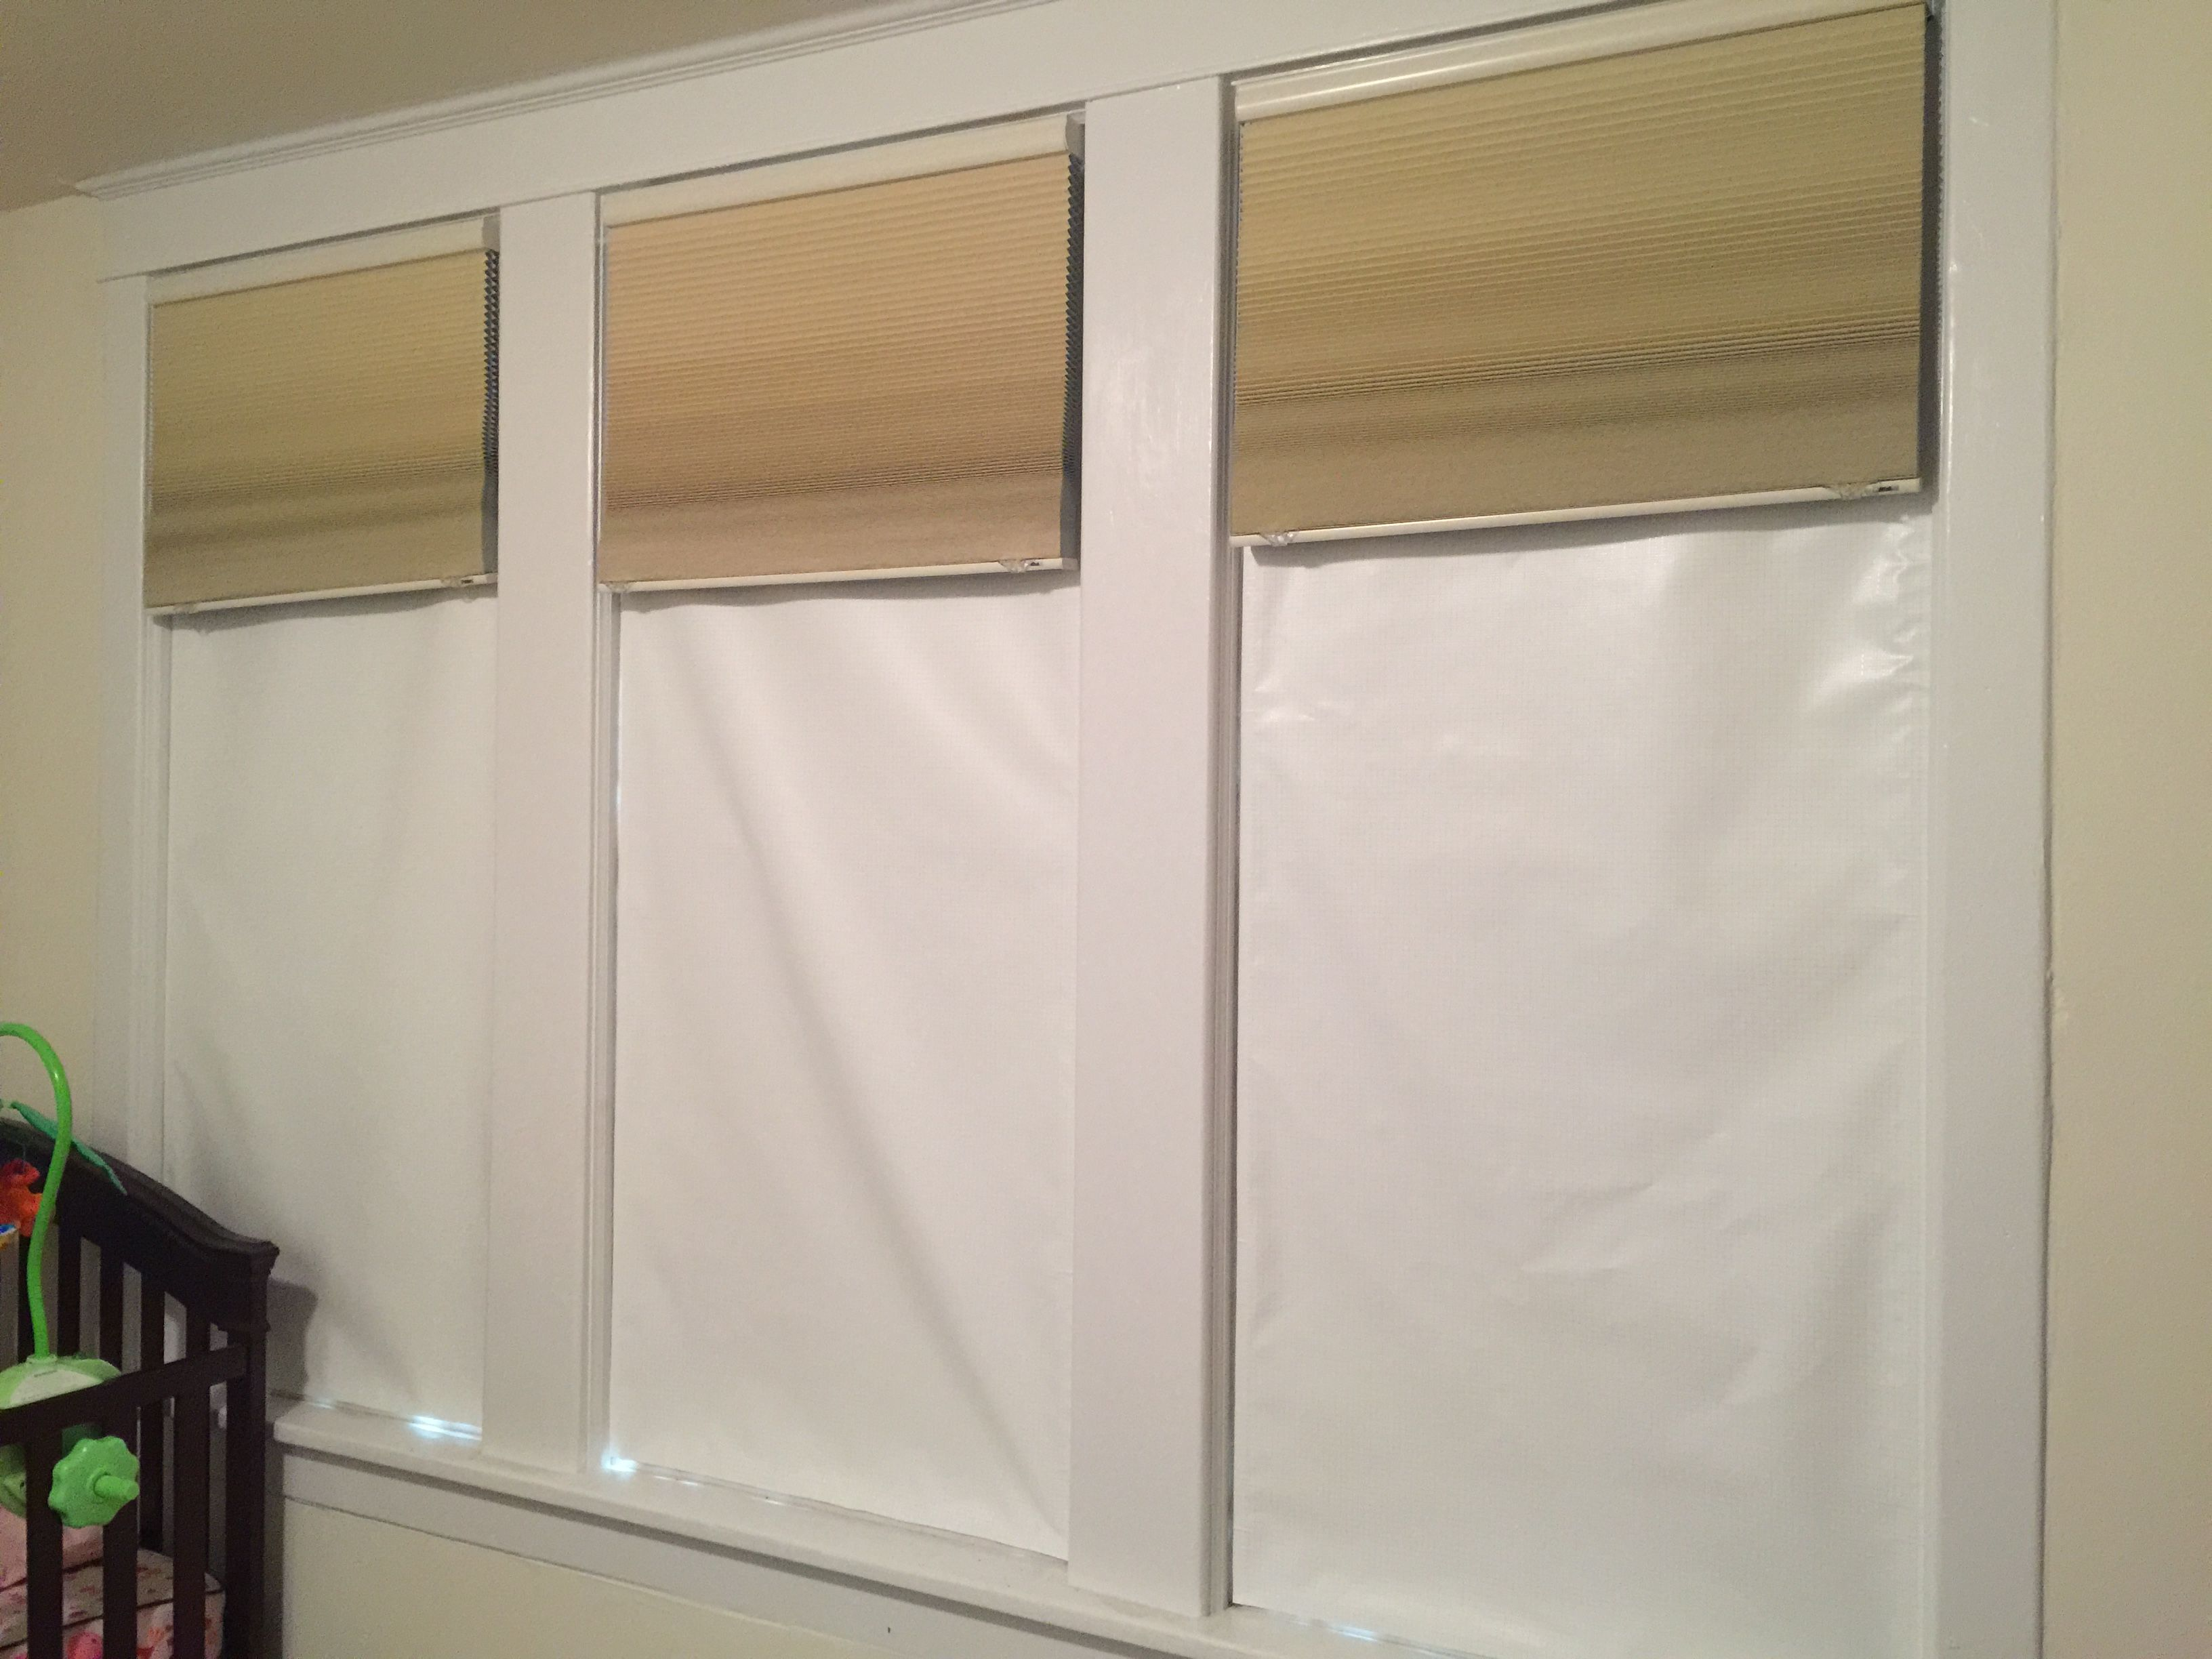 A Customer Purchased 3 Blackout Ez Window Cover Customs In Color White White For His Her Nursery Blackout Ez Win Window Coverings Window Treatments Home Decor